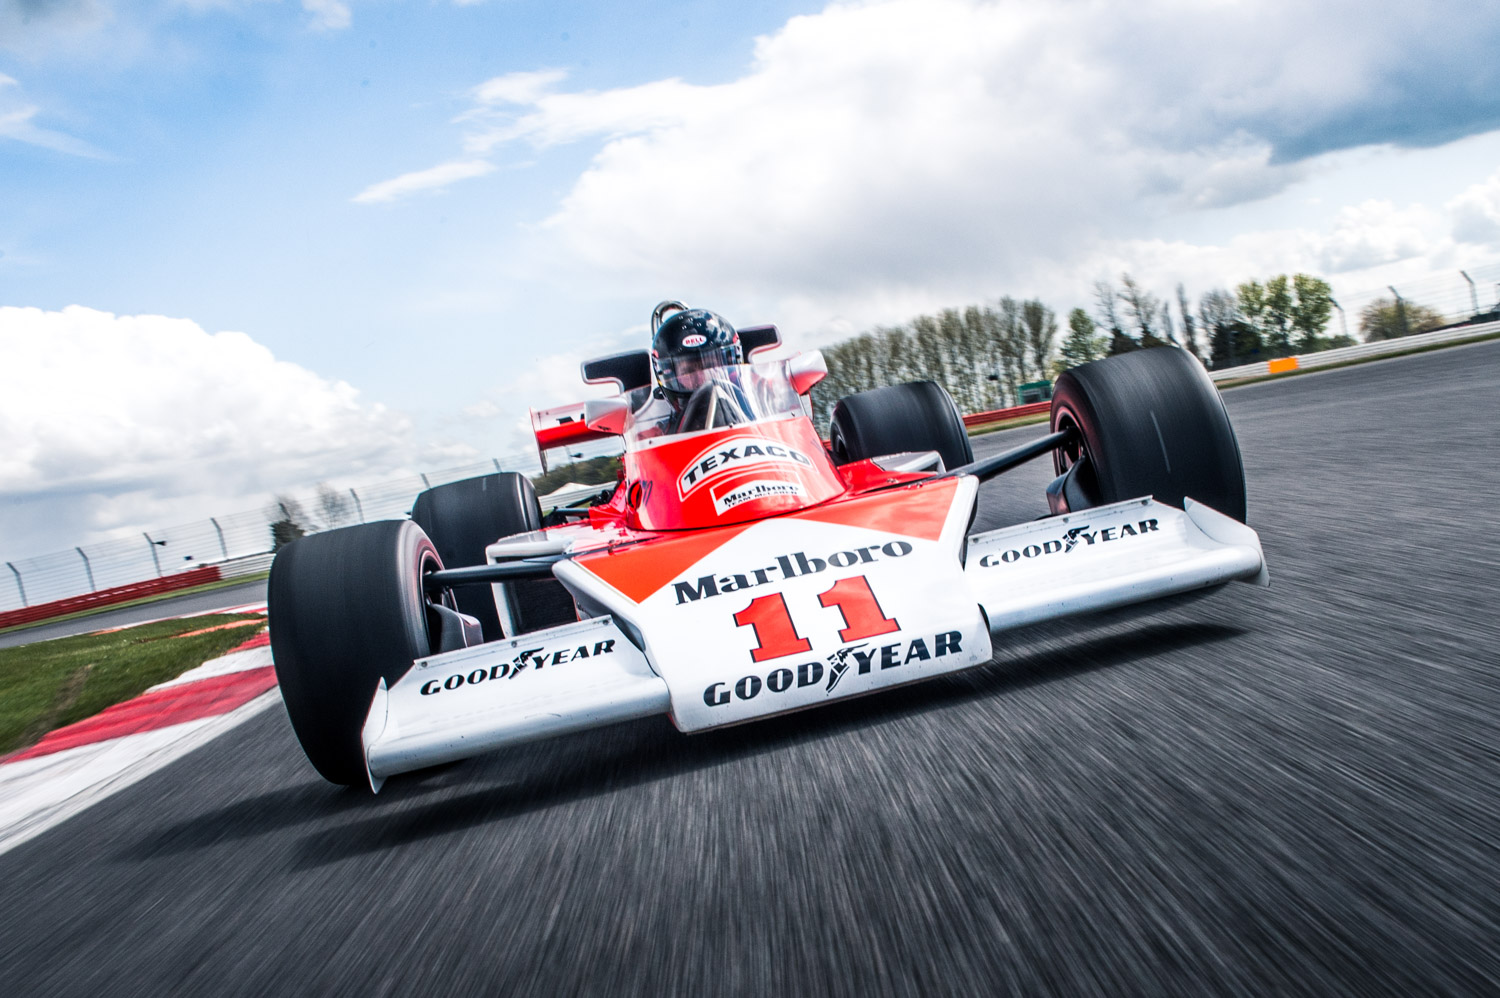 Jayson-Fong-Photography-Form-and-function-international-Mclaren-M23.jpg